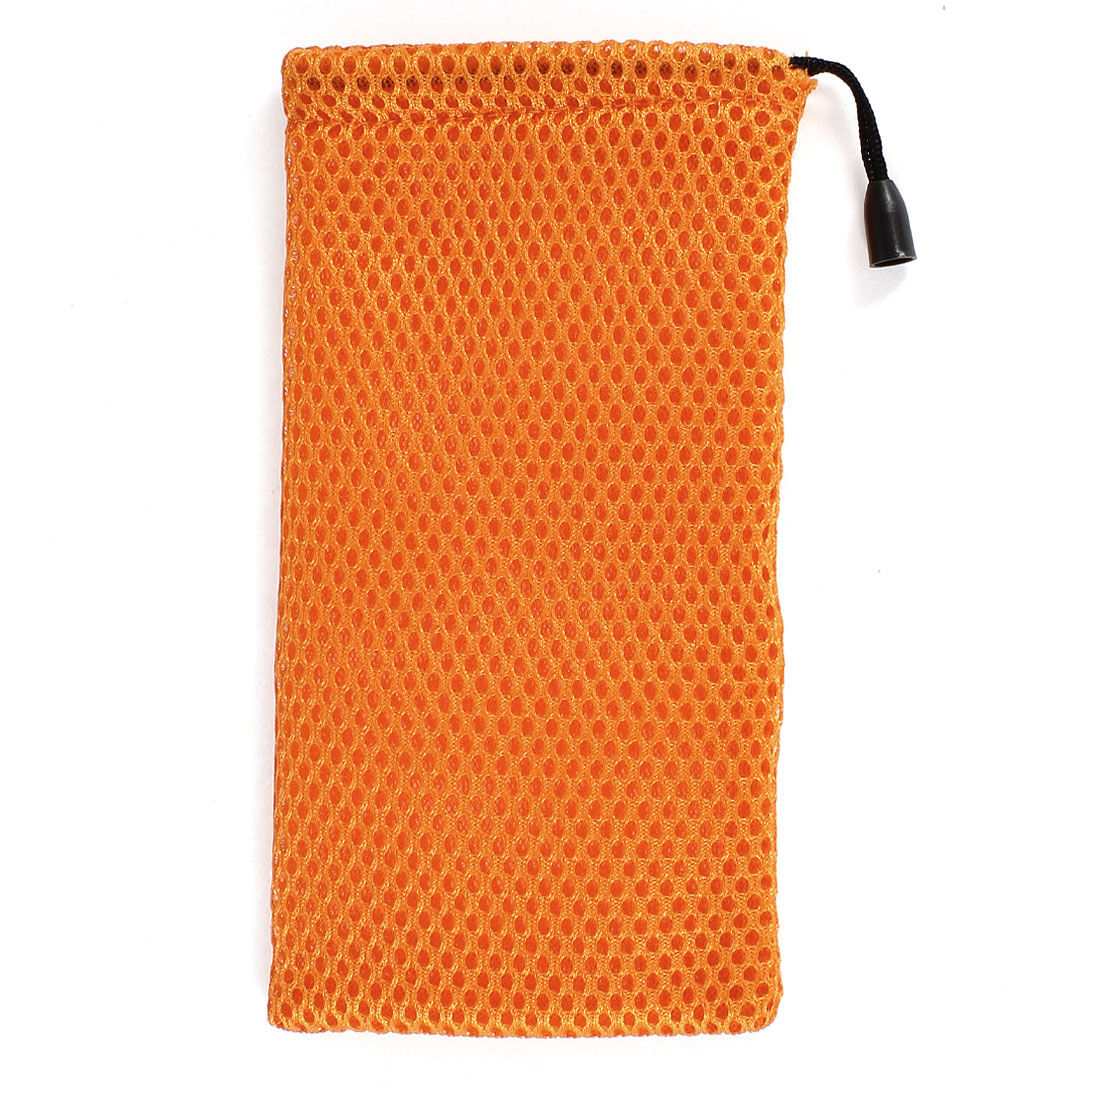 Orange Soft Nylon Mesh Rectangle Drawstring Glasses Sunglasses Bag Holder